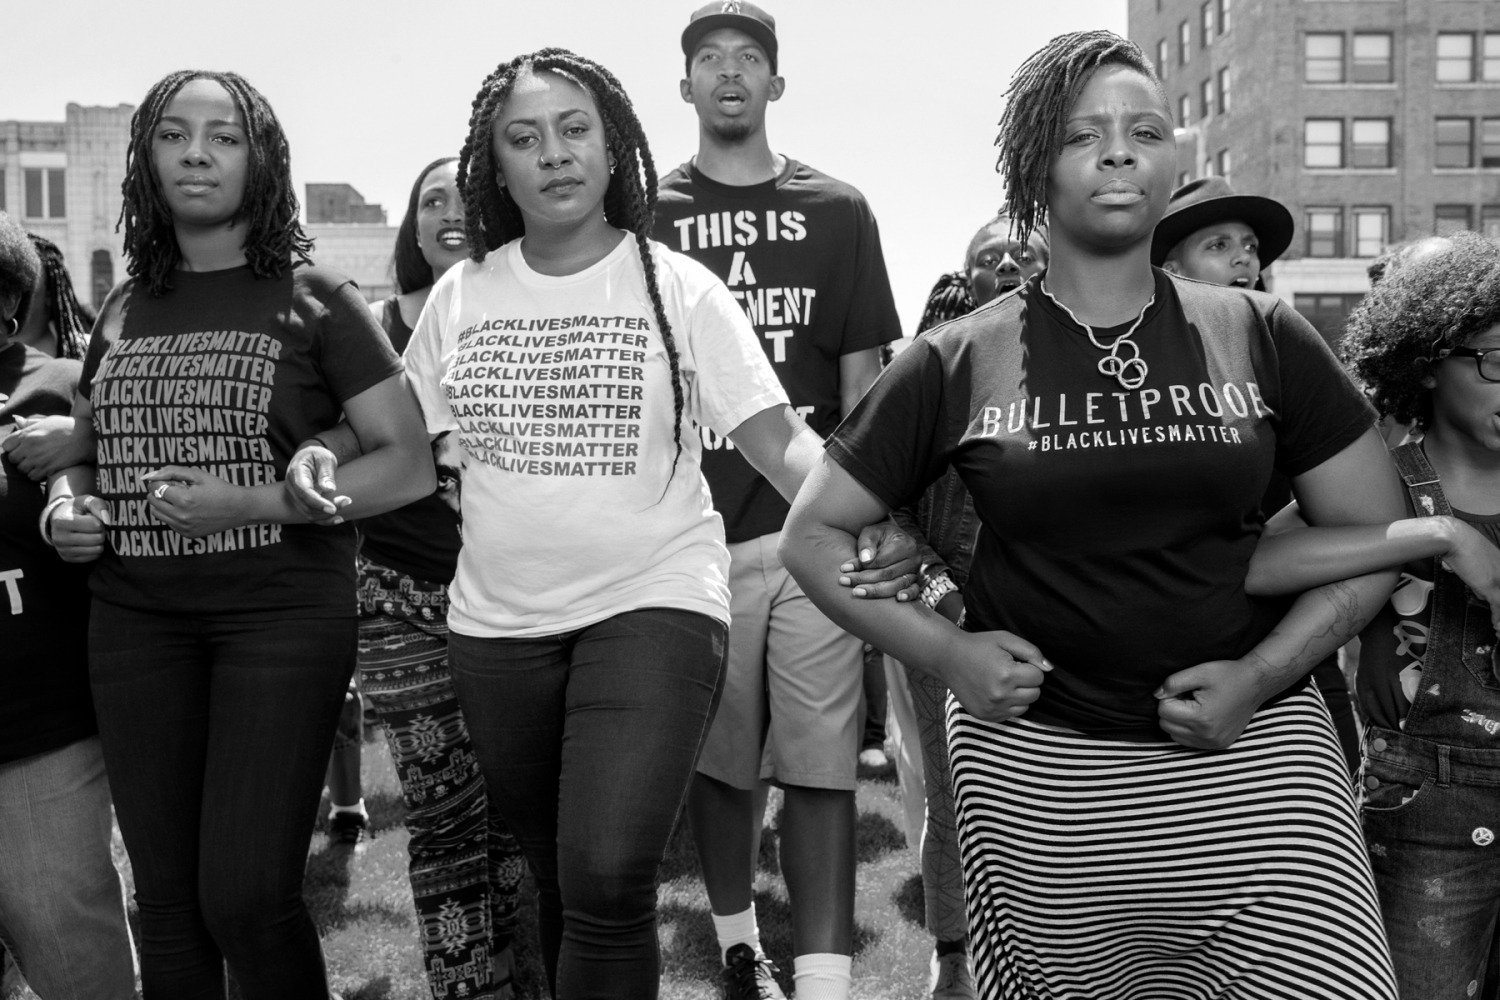 (L-R) Opal Tometi, Alicia Garza, and Patrisse Cullors, founders of the Black Lives Matter activist movement in Cleveland, Ohio, July 2015.